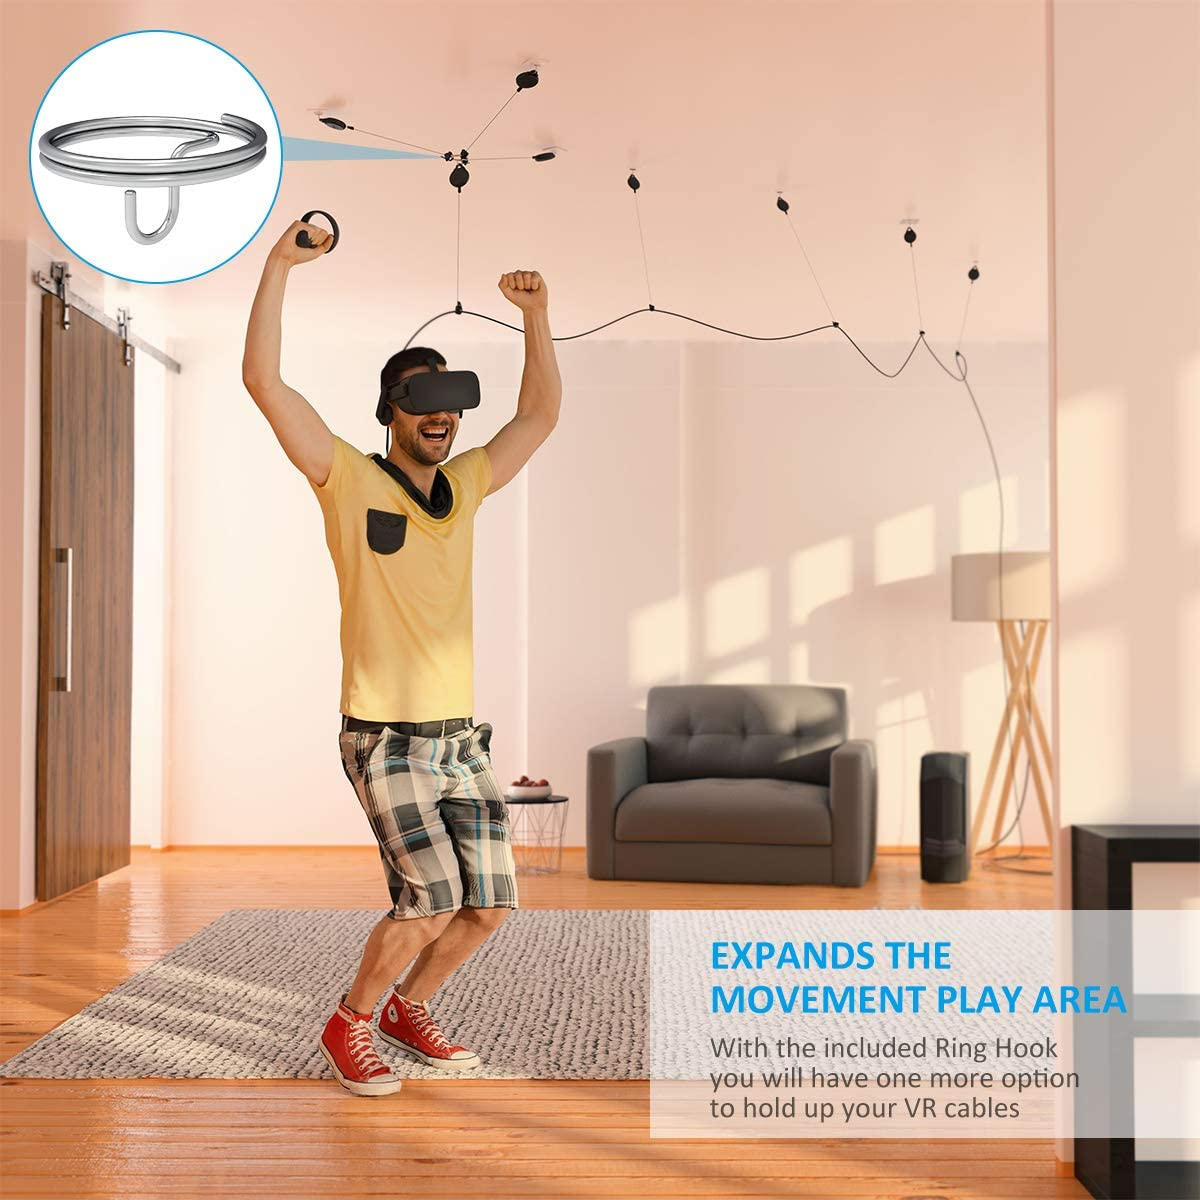 Pro Version 6 Packs Retractable Ceiling Pulley System for HTC Vive//HTC Vive Pro//Oculus Rift S//PS VR//Microsoft MR//Samsung Odyssey VR Accessories KIWI design VR Cable Management White